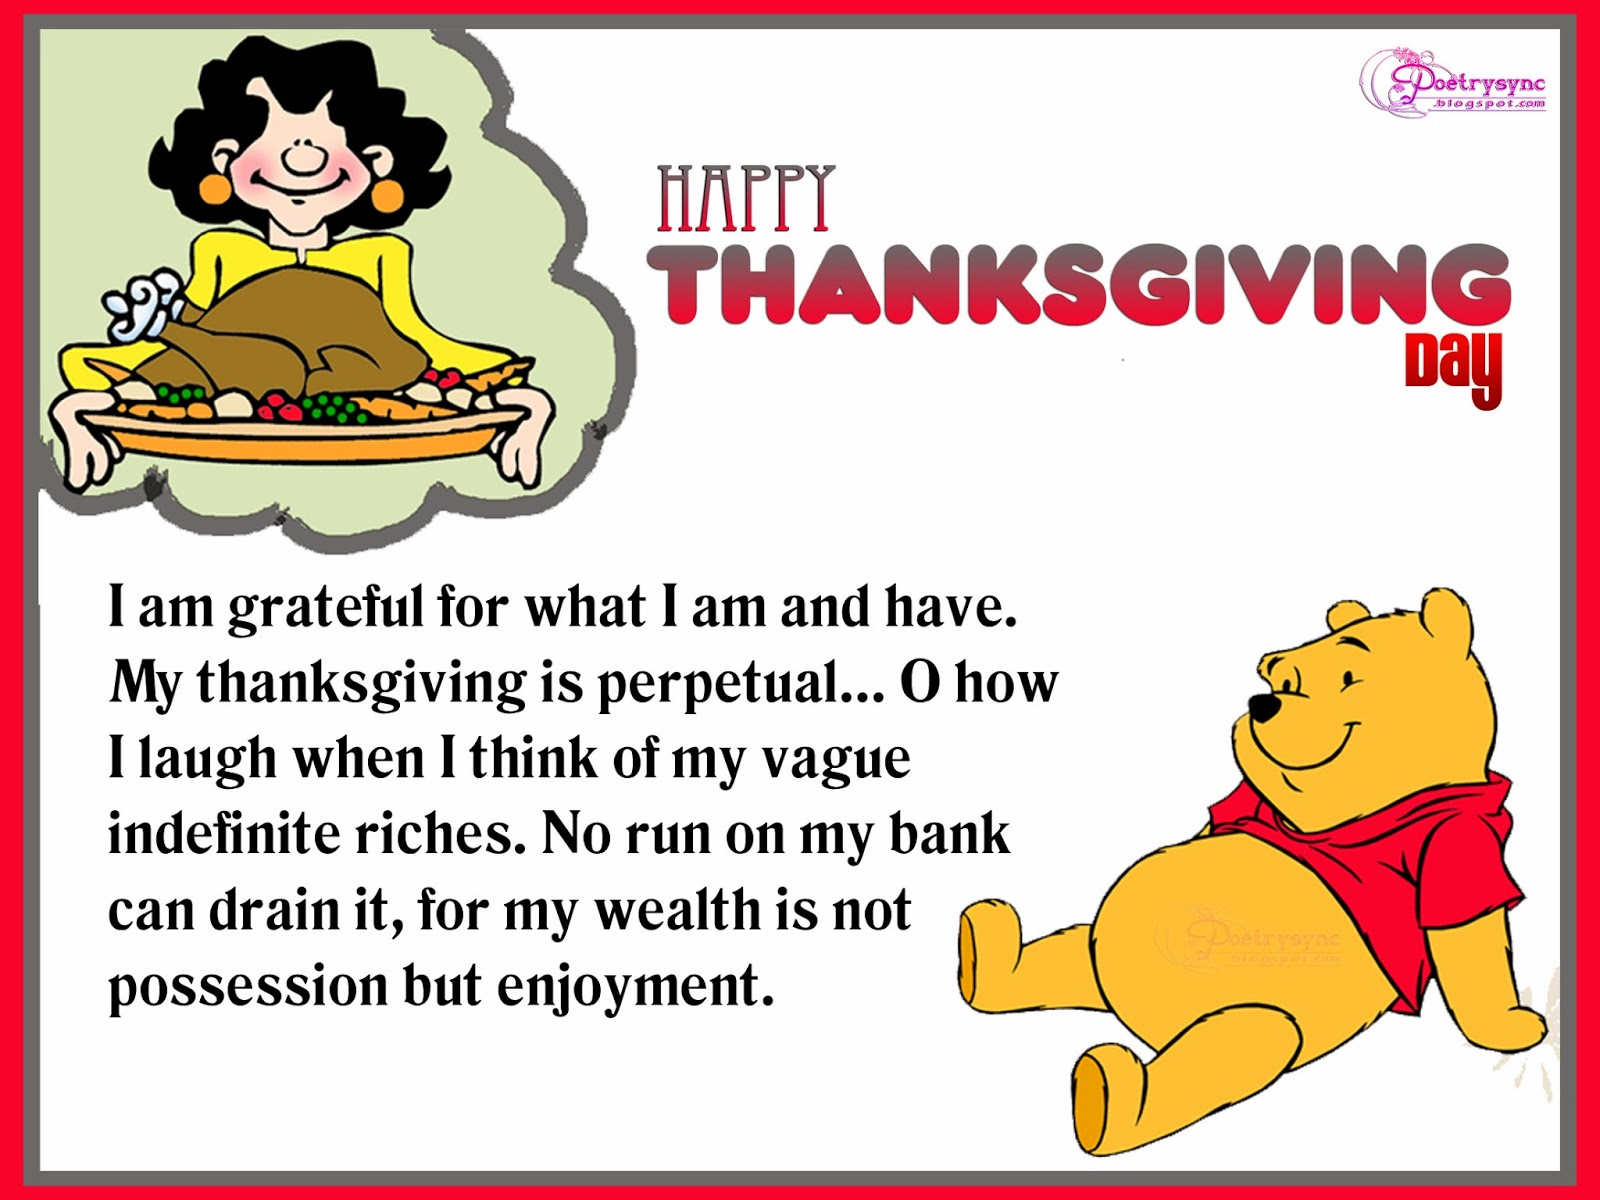 Happy thanksgiving day quotes quotesgram for Funny thanksgiving phrases